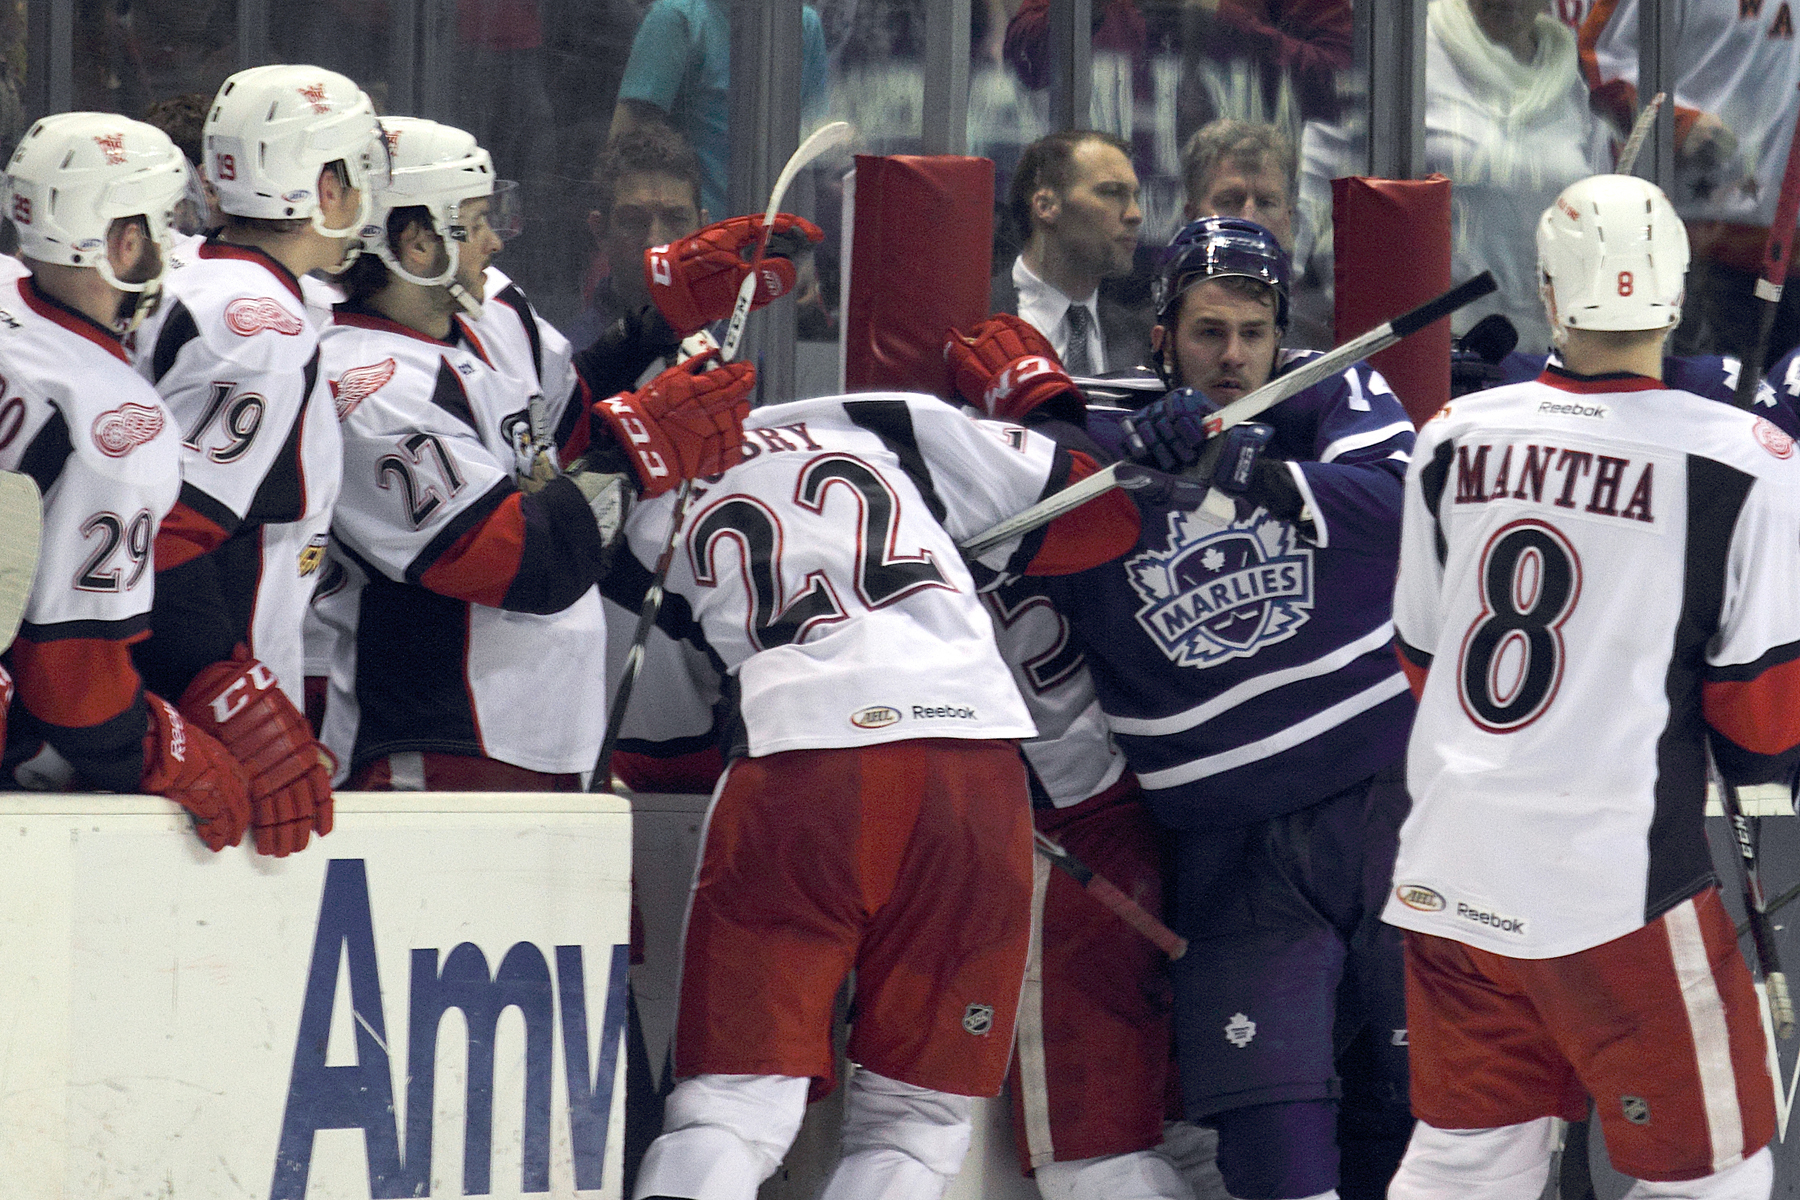 The Marlies were asking for it all night, and the Griffins finally gave it to them. Suck it hard, TorontNO